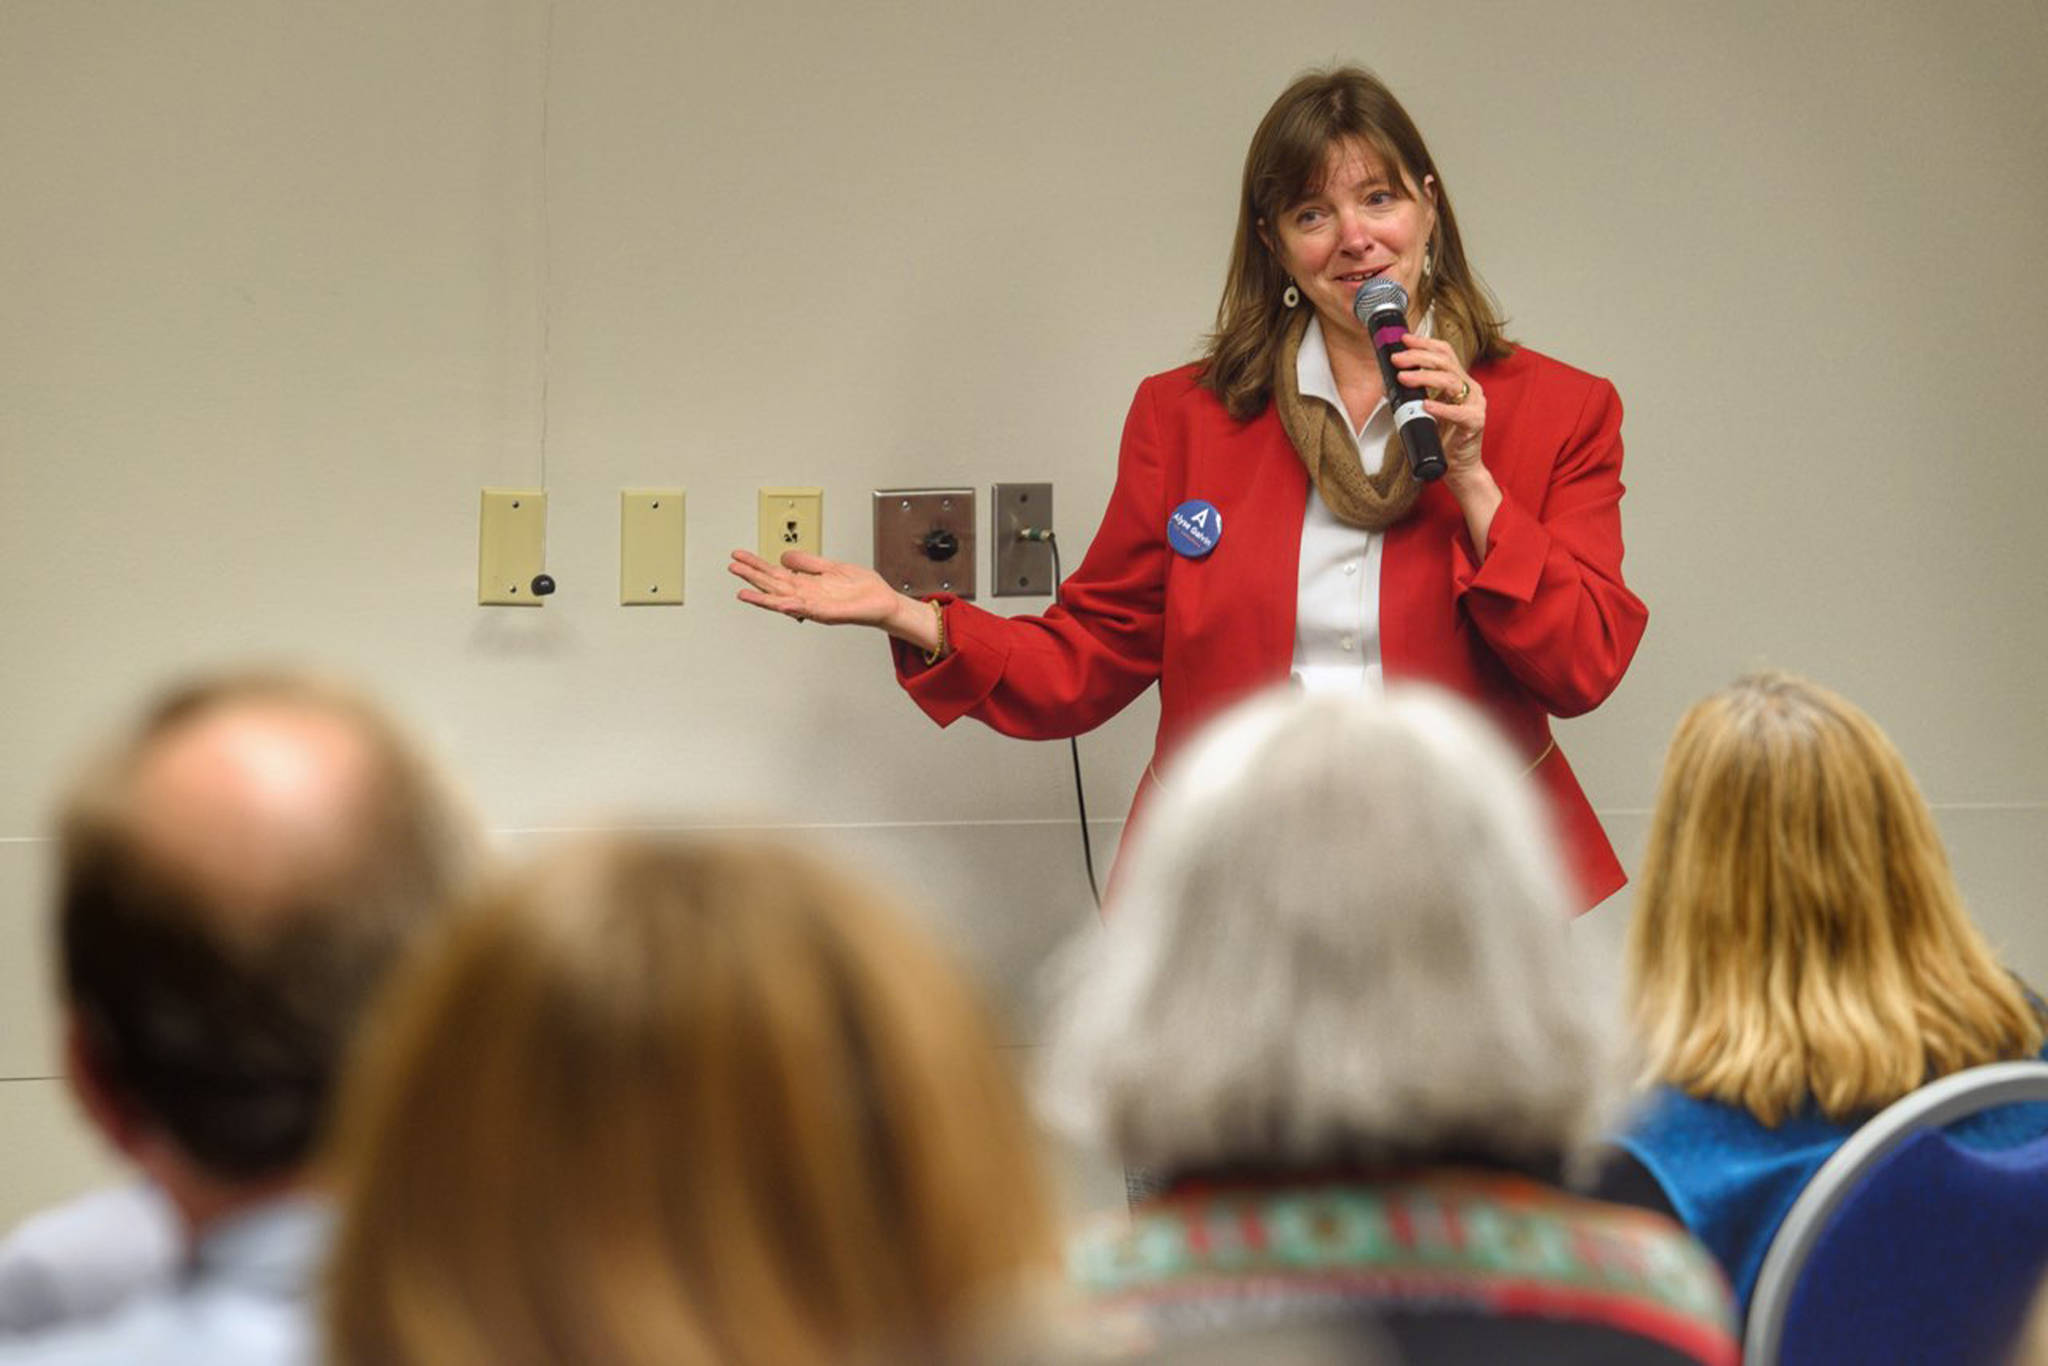 Alyse Galvin, Alaska's independent candidate for U.S. House of Representatives, holds a town hall-style meeting to an overflowing room at Centennial Hall on Sunday, Oct. 21, 2018. (Michael Penn | Juneau Empire)